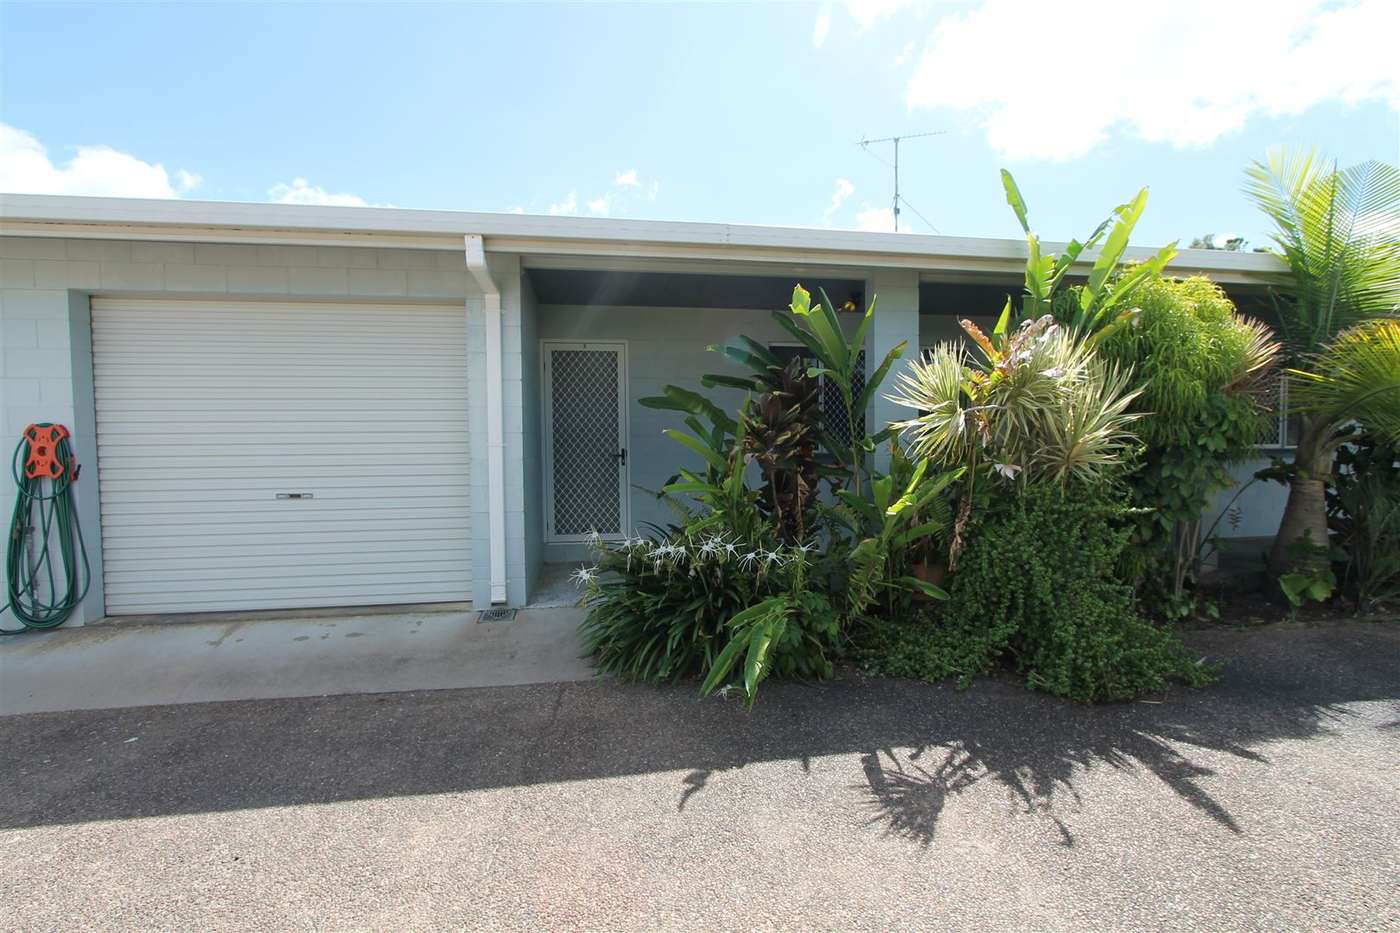 Main view of Homely house listing, 3/5 Macmillan Street, Ayr, QLD 4807